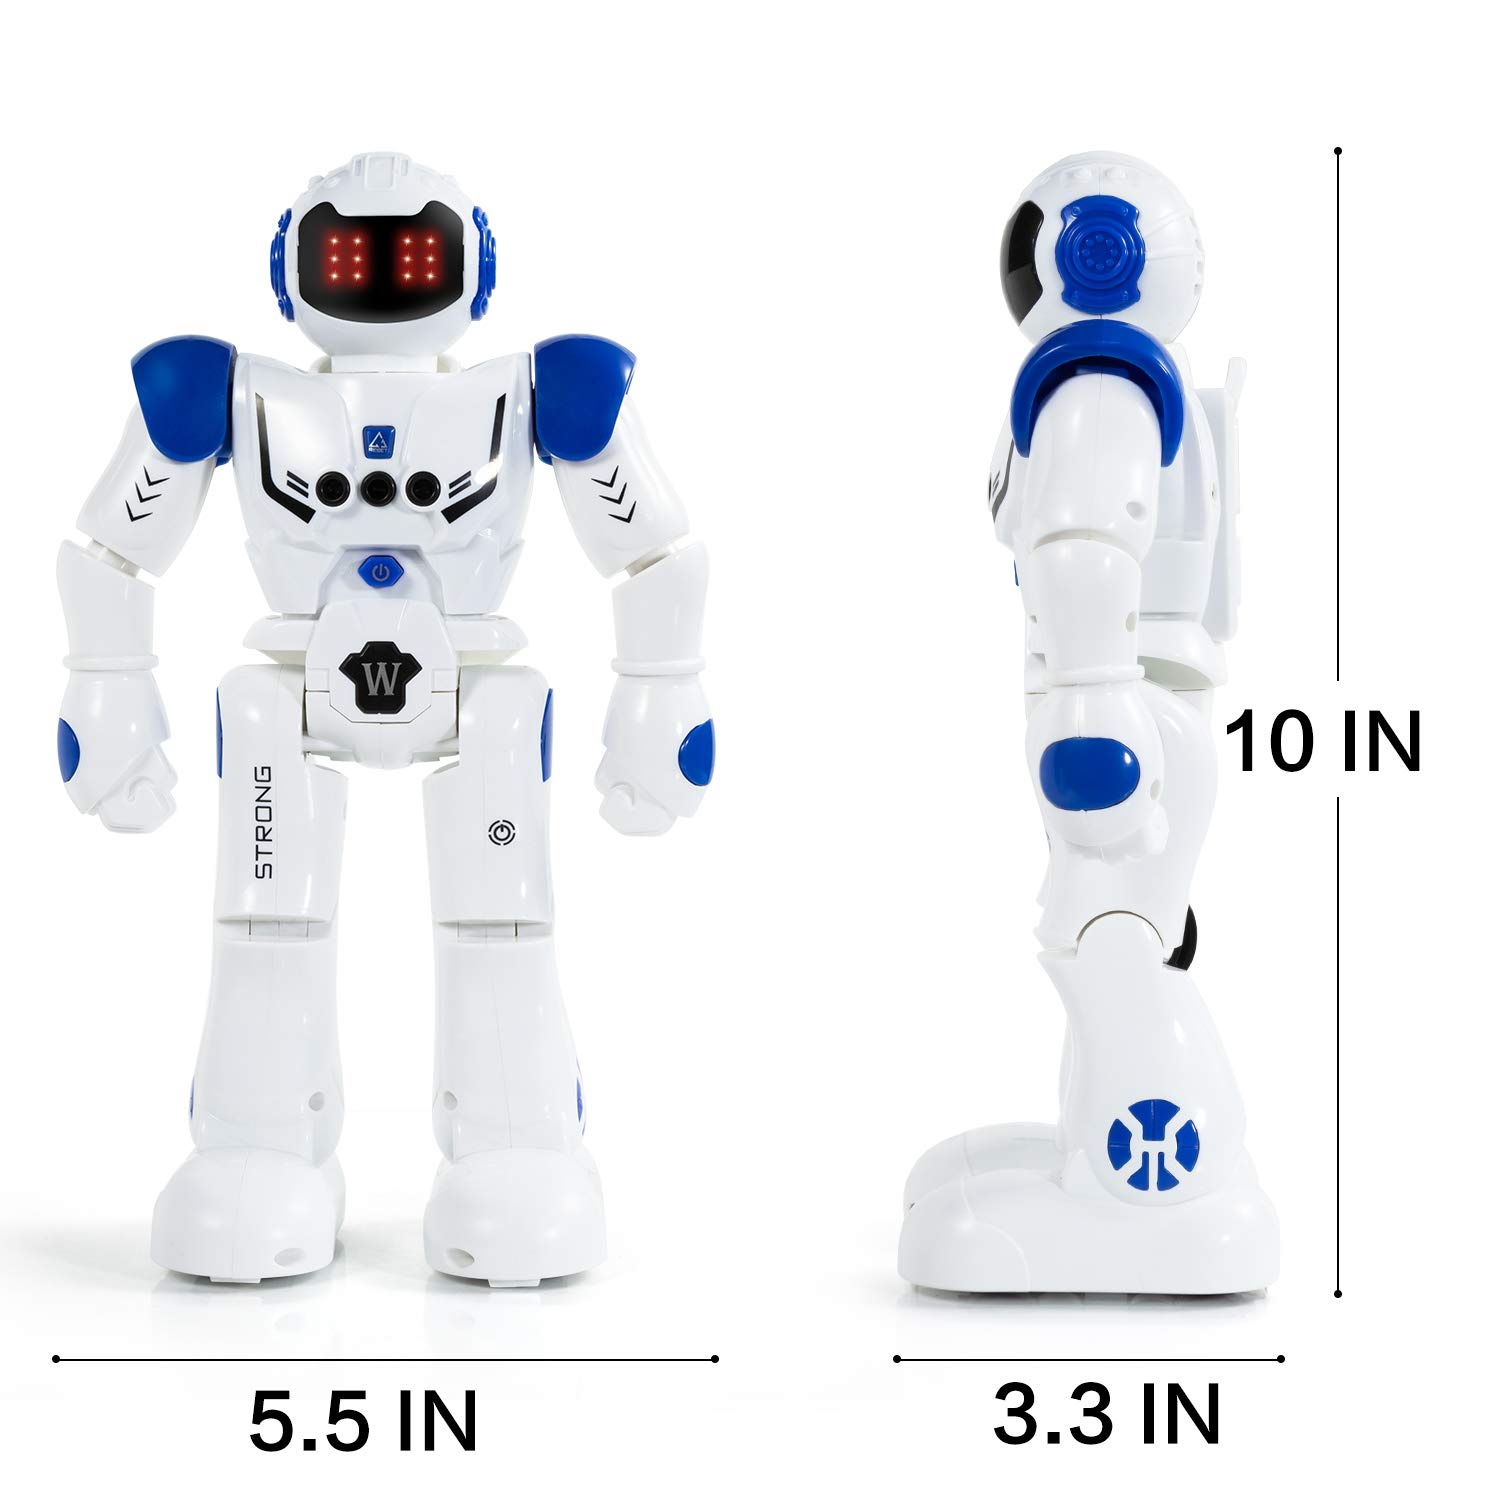 KINFAYV Smart Robot Toy - Remote Control Robot, RC Programmable Educational Robot for Kids Birthday Gift Present, Interactive Walking Singing Dancing Smart Intelligent Robotics for Kids by KINFAYV (Image #5)